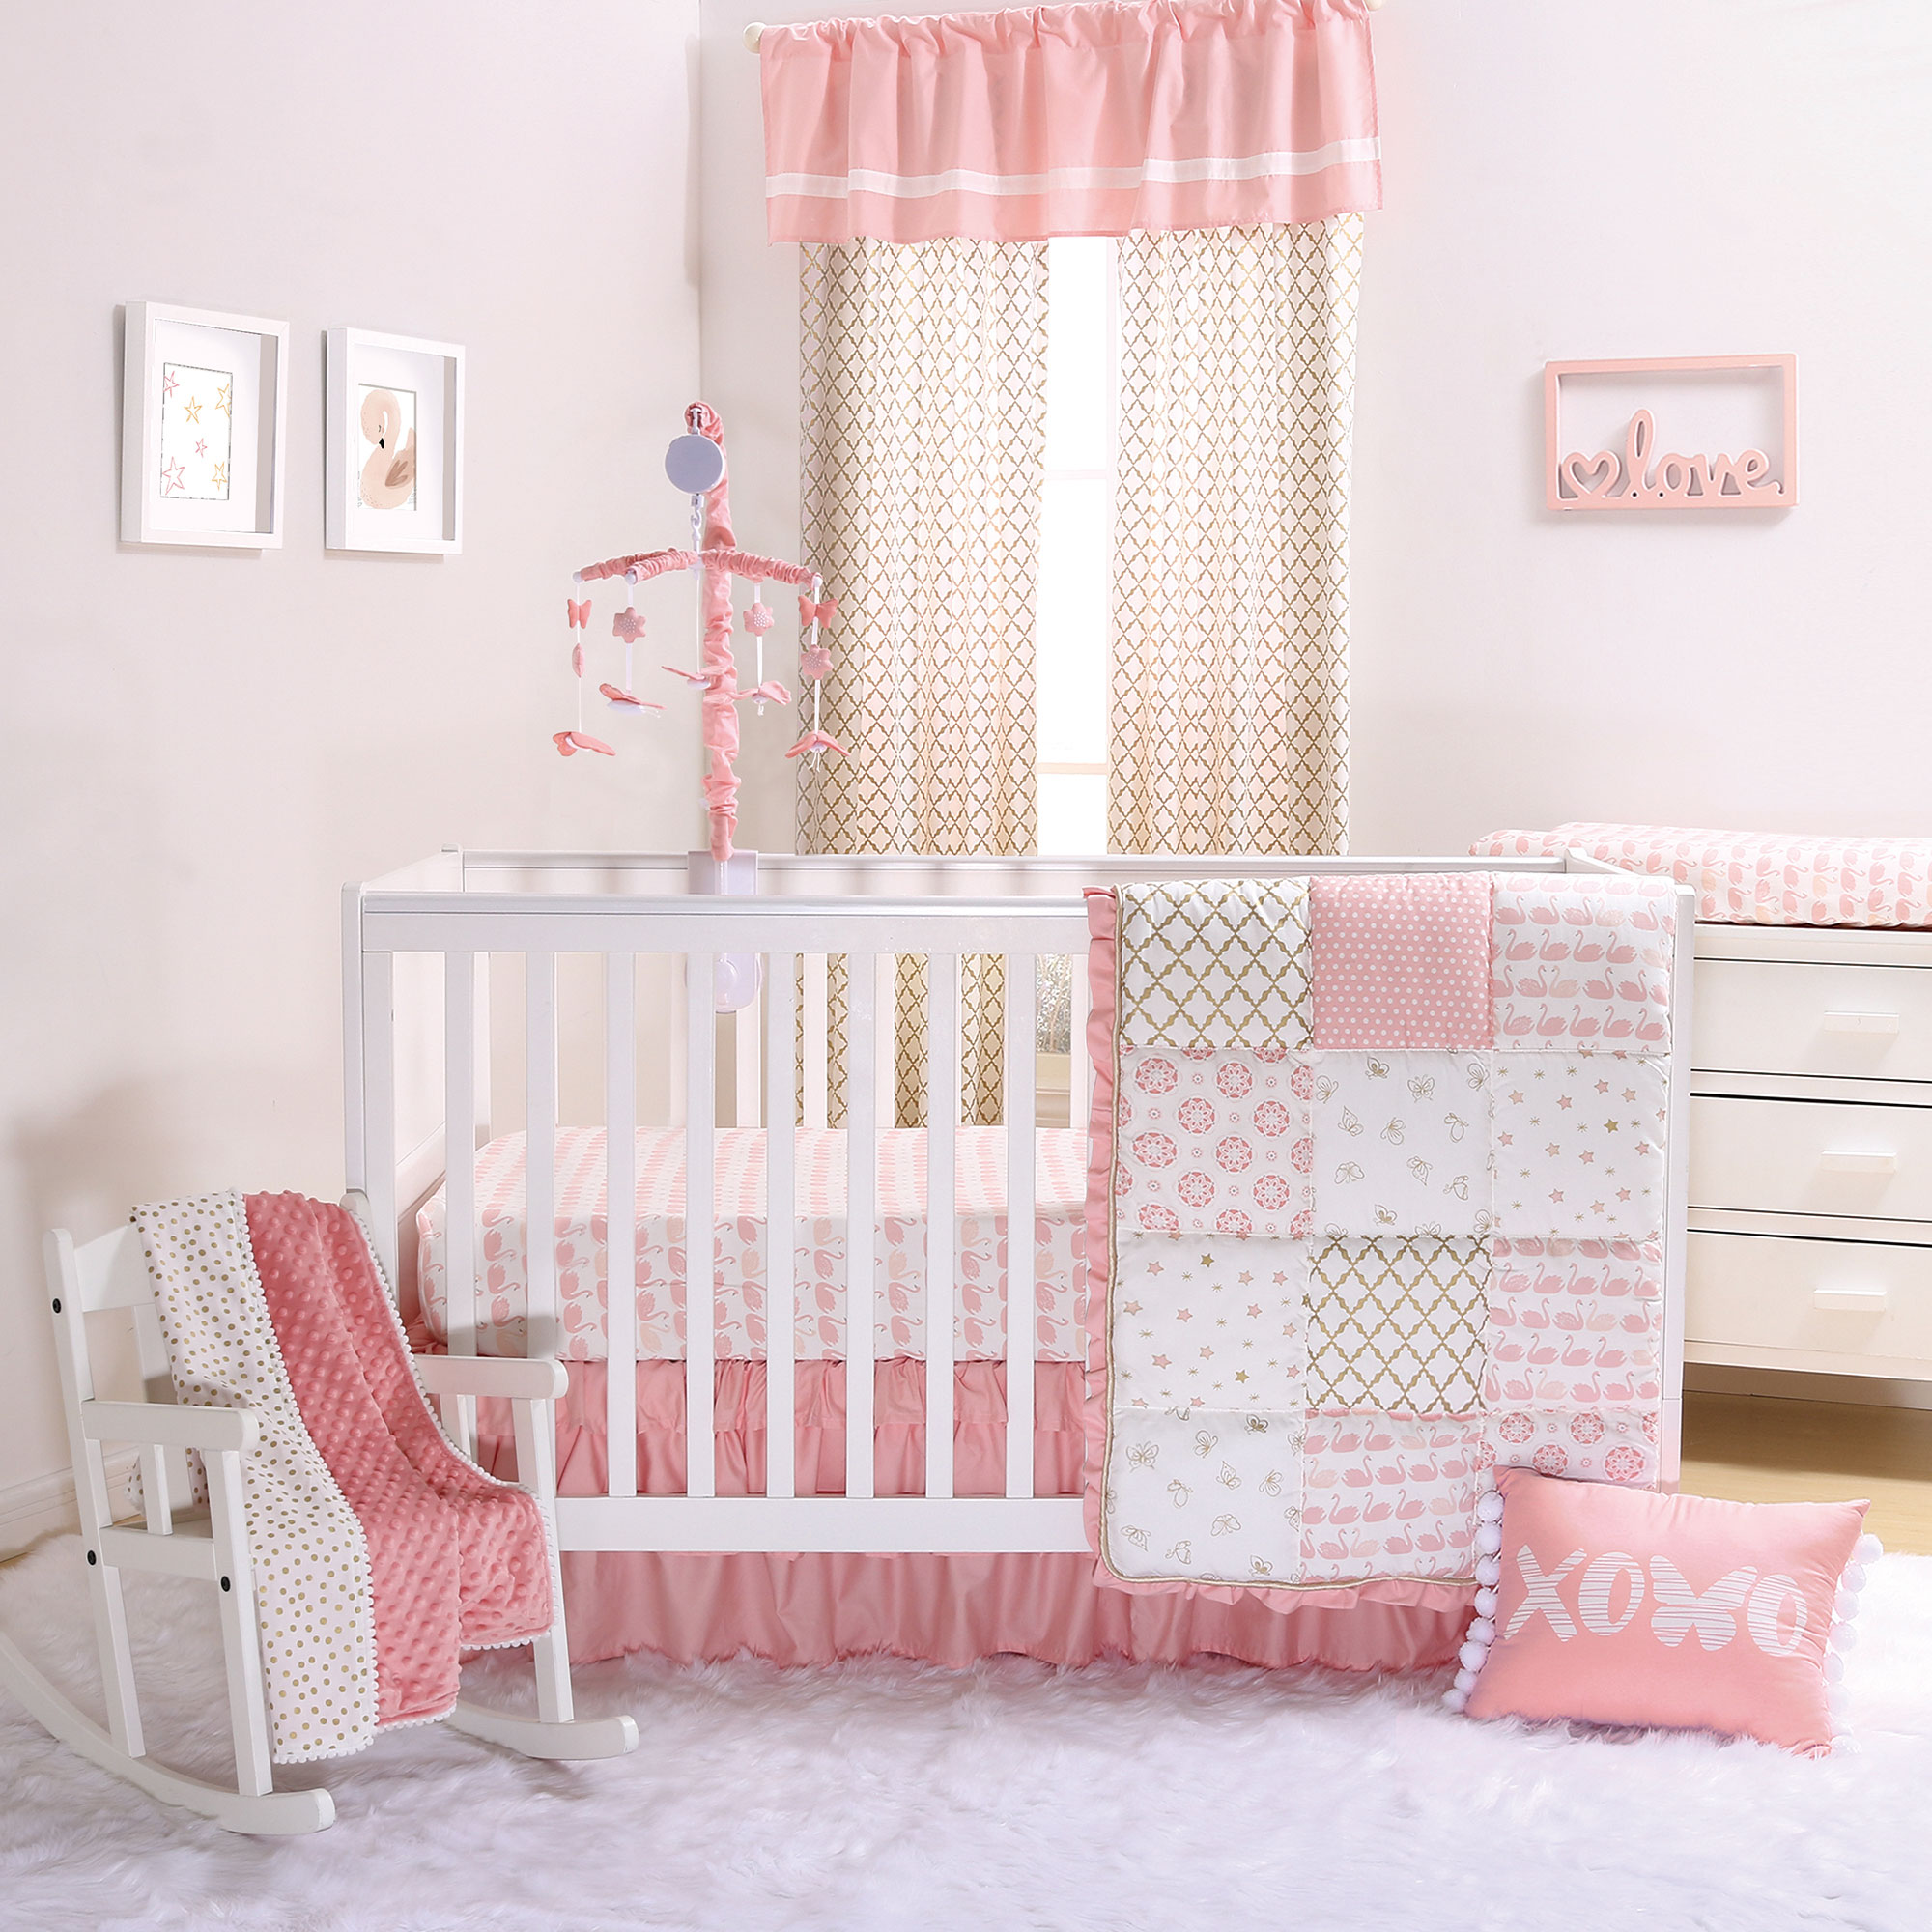 Sweet Swan Coral Pink and Gold Baby Girl Crib Bedding - 20 Piece Nursery Essentials Set